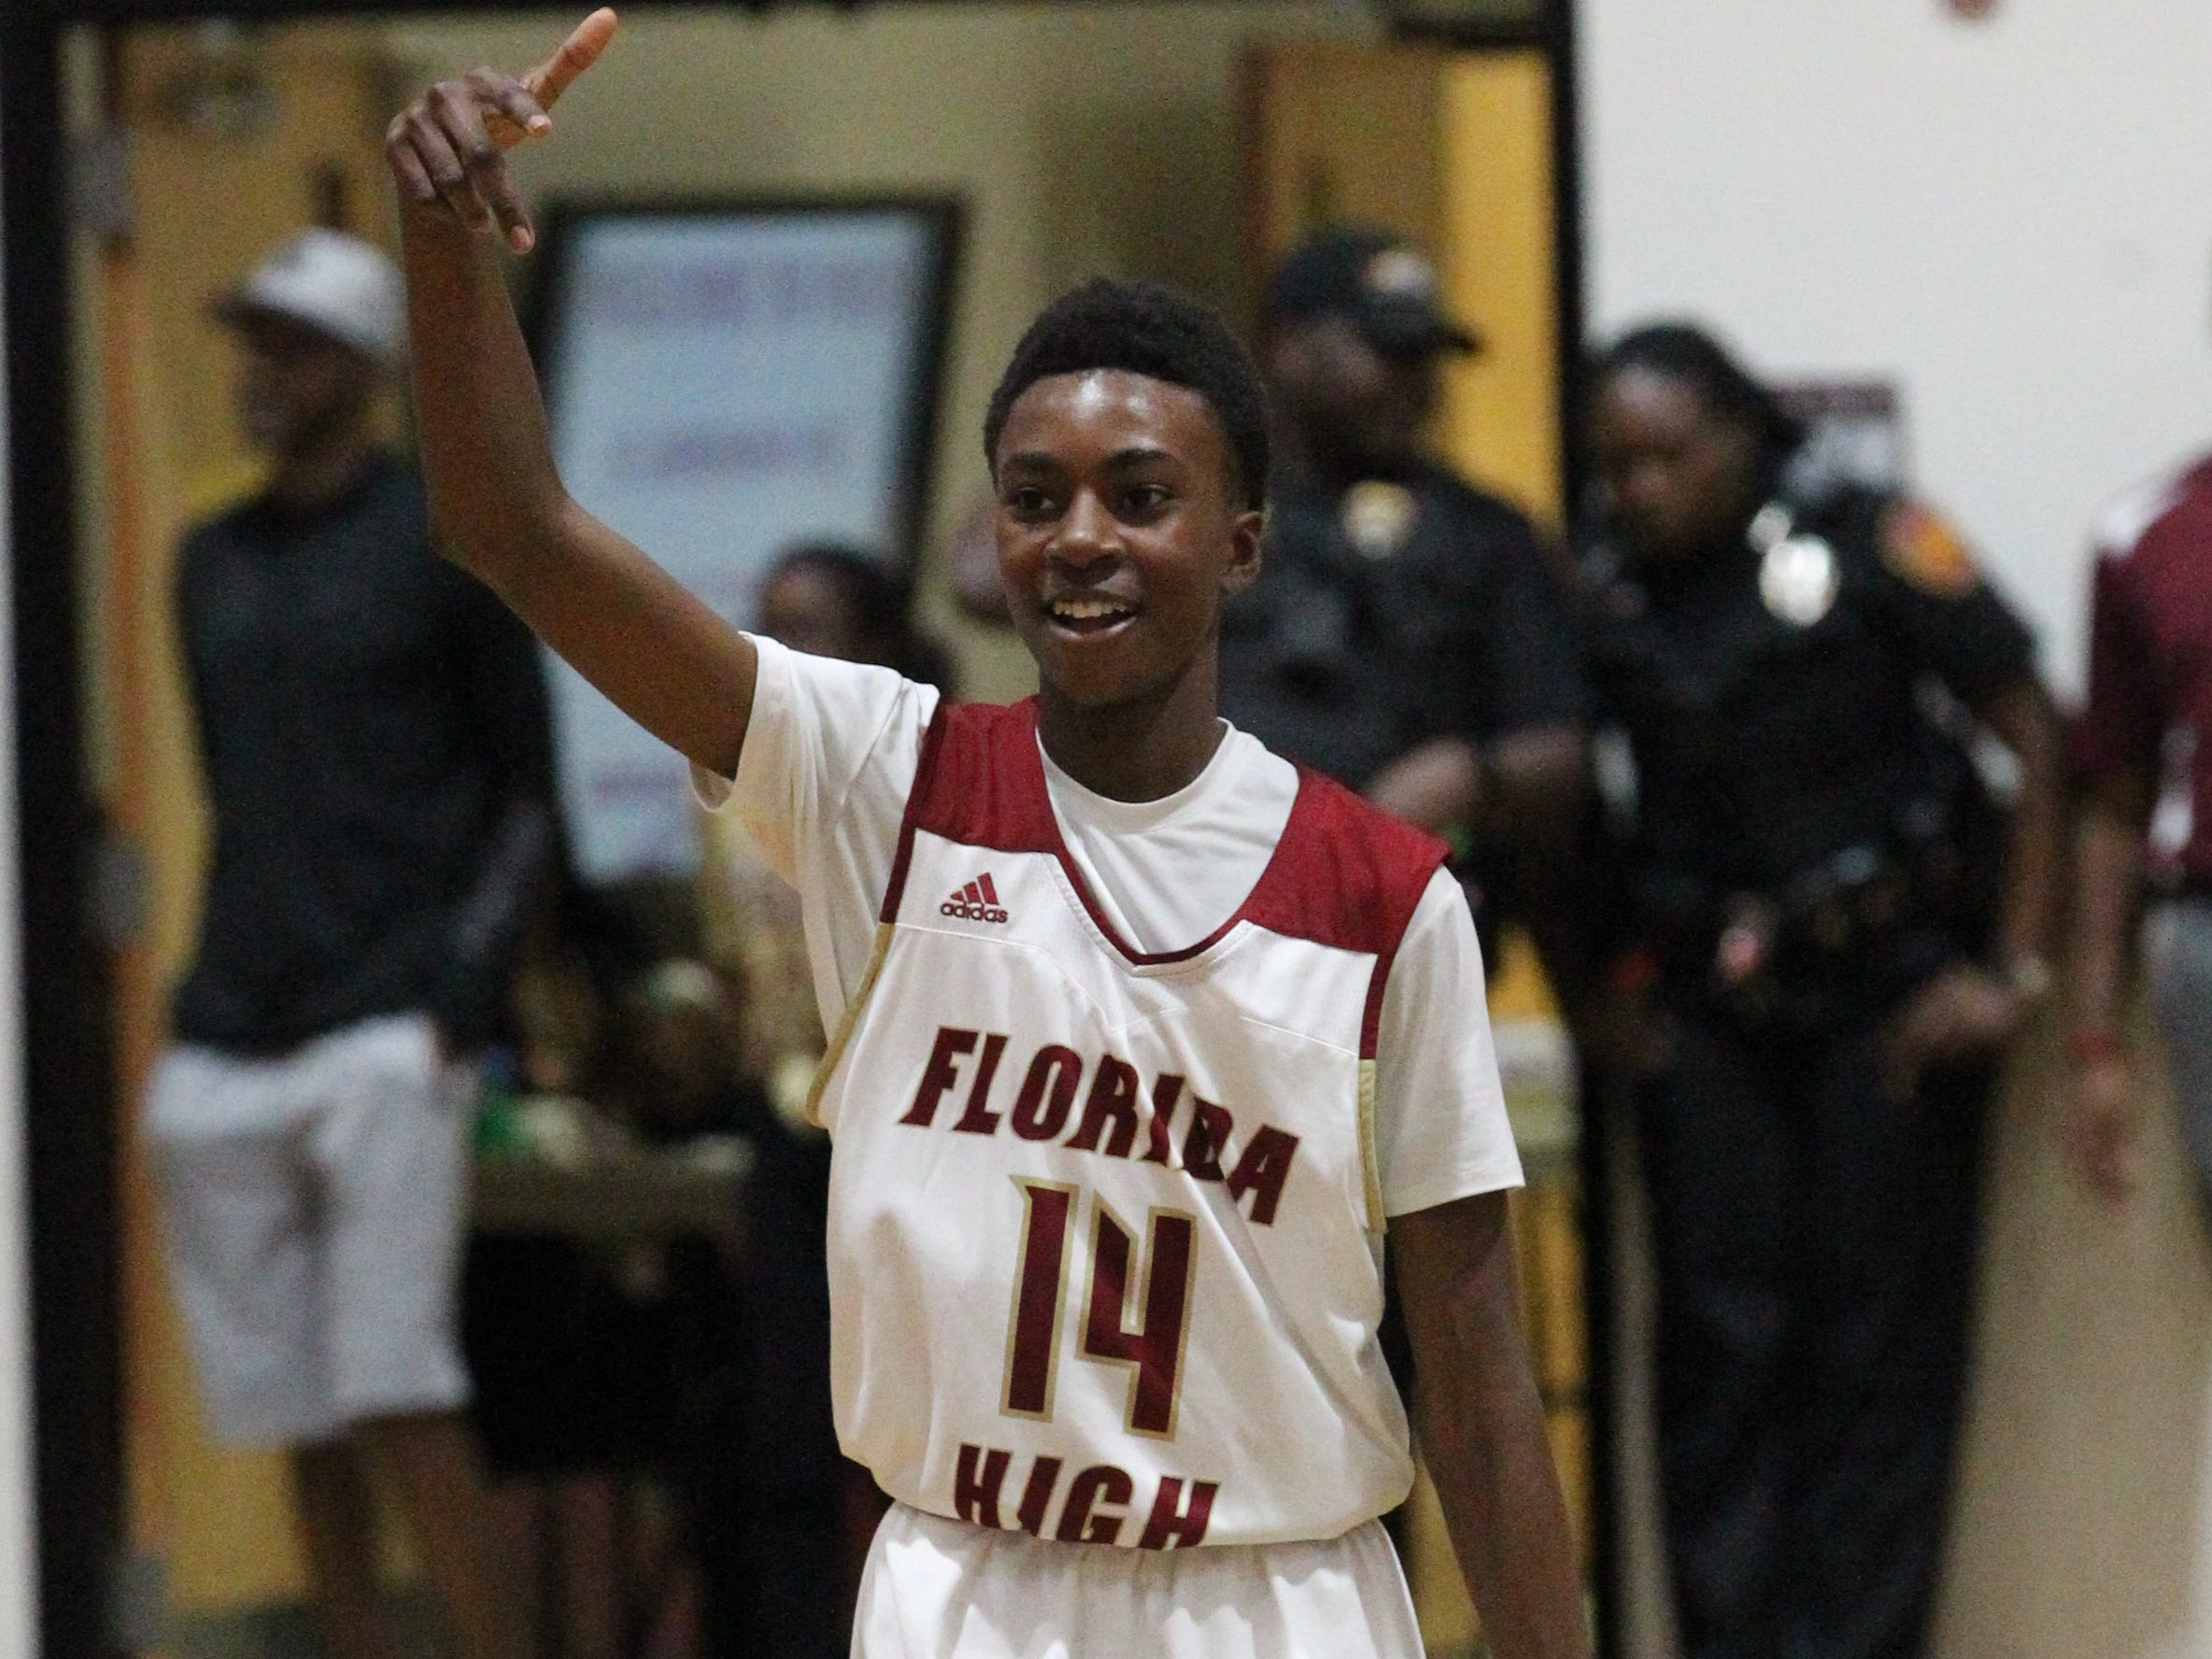 Florida High eighth-grader Anthony Robinson signals after a made 3-pointer as the Seminoles beat Pensacola Catholic 47-42 during a Region 1-5A quarterfinal on Feb. 21, 2019.